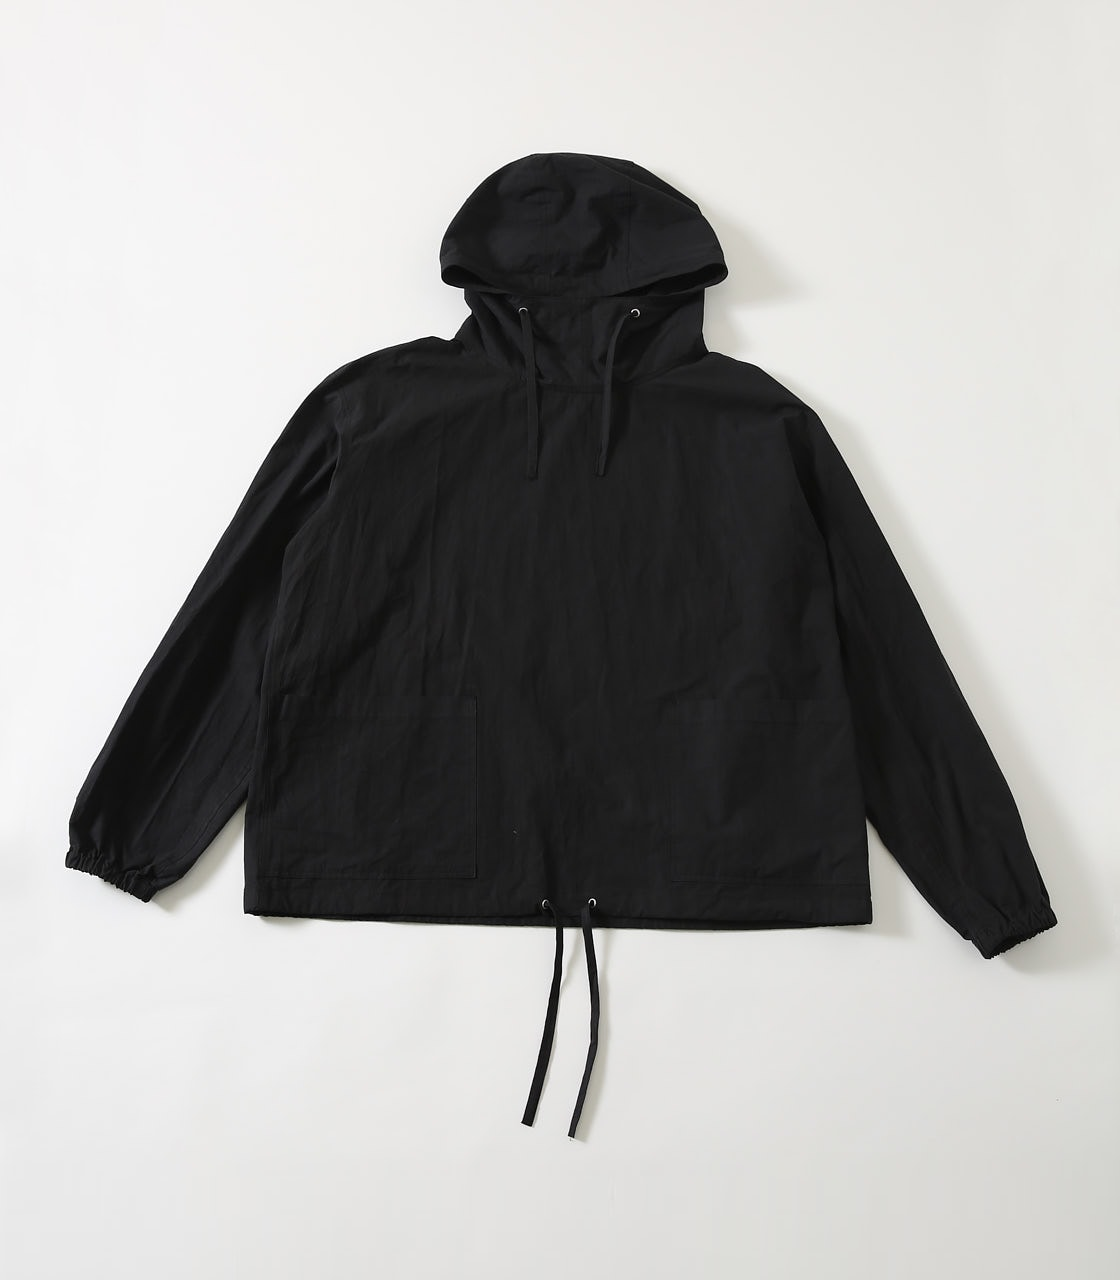 【AZUL BY MOUSSY】OVERSIZED COTTON ANORAK 詳細画像 BLK 1